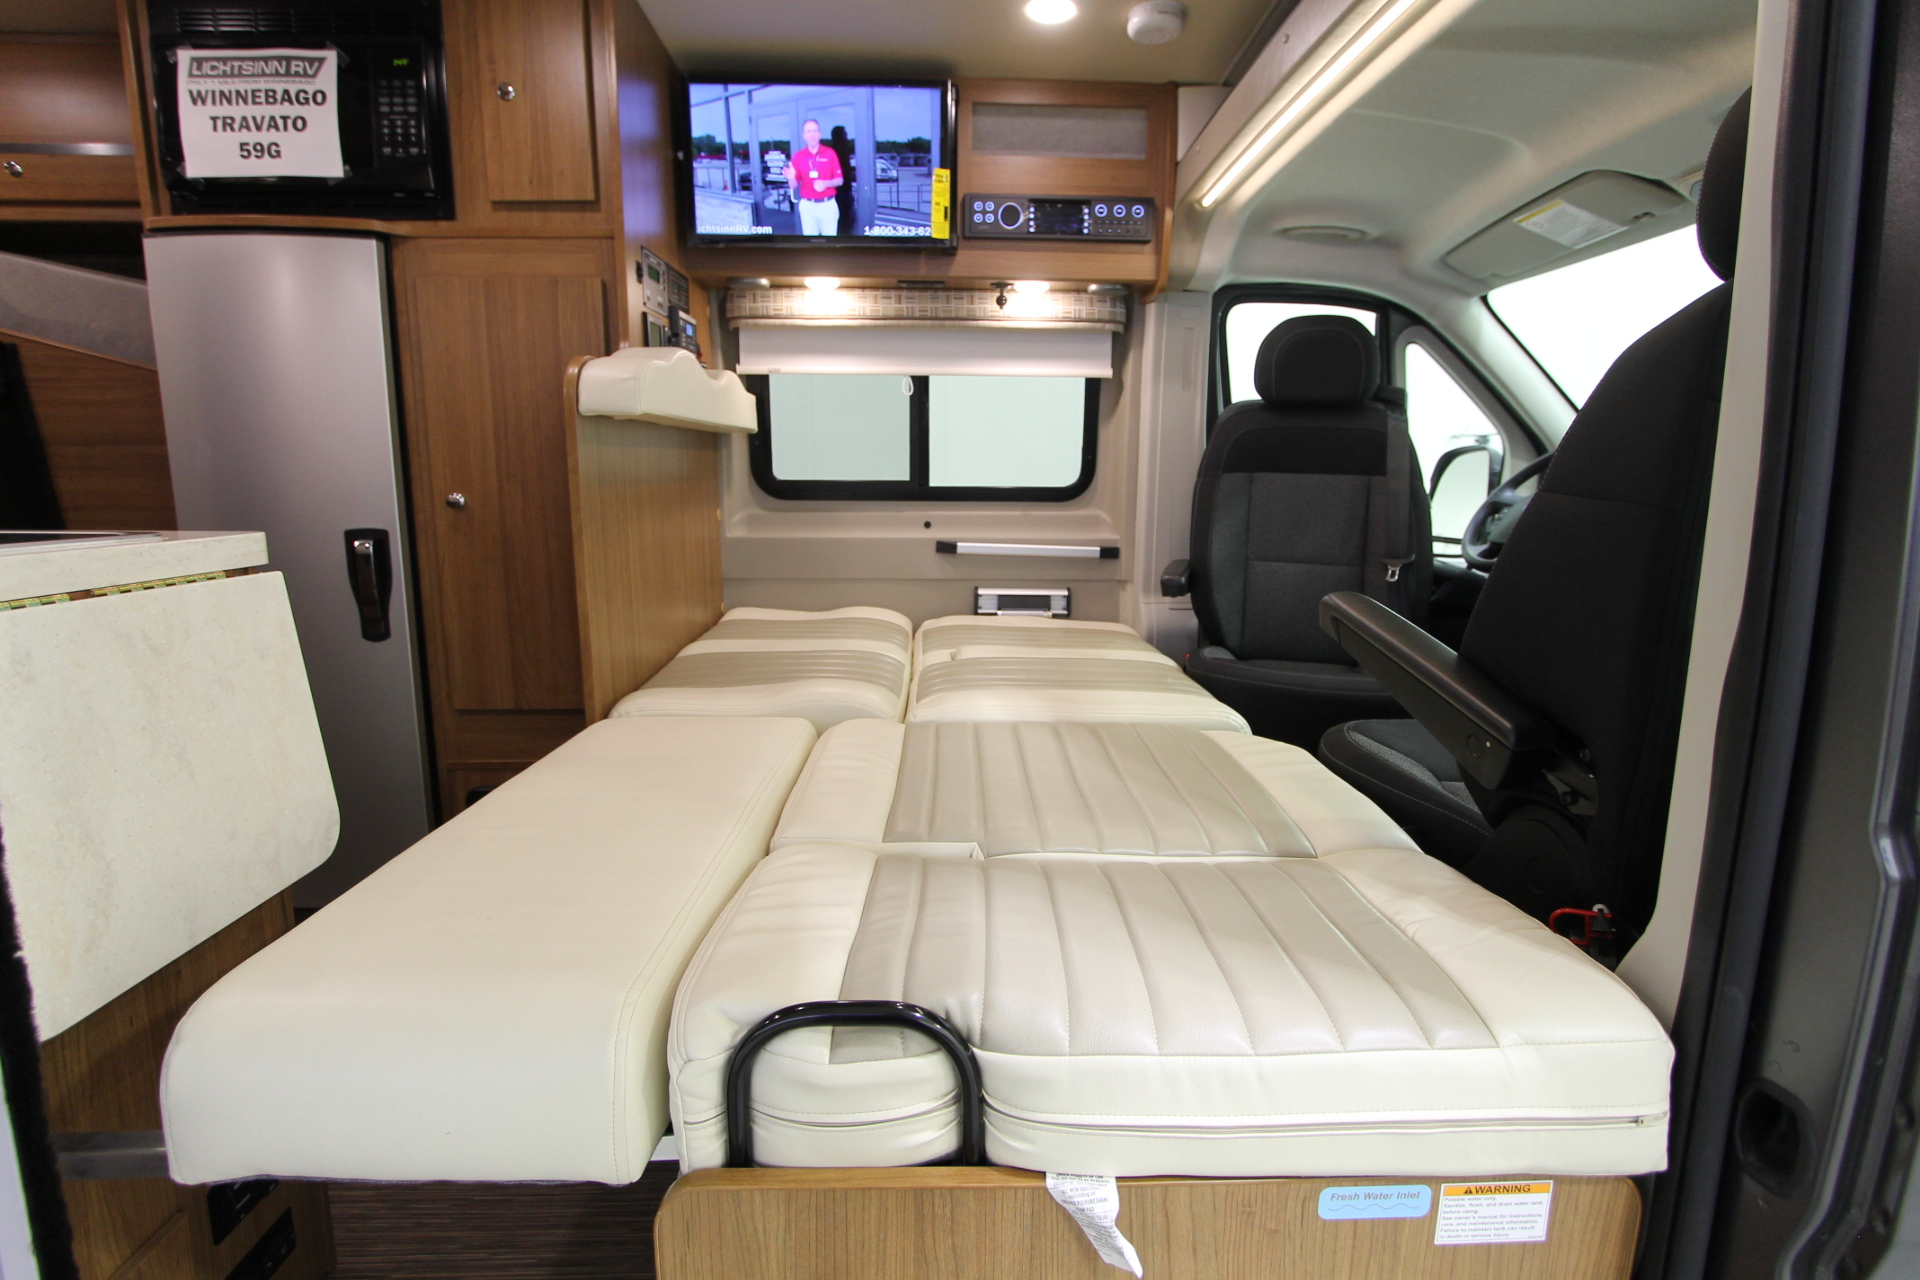 Groovy 8 Reasons Why We Think The Winnebago Travato Is Better Than Caraccident5 Cool Chair Designs And Ideas Caraccident5Info